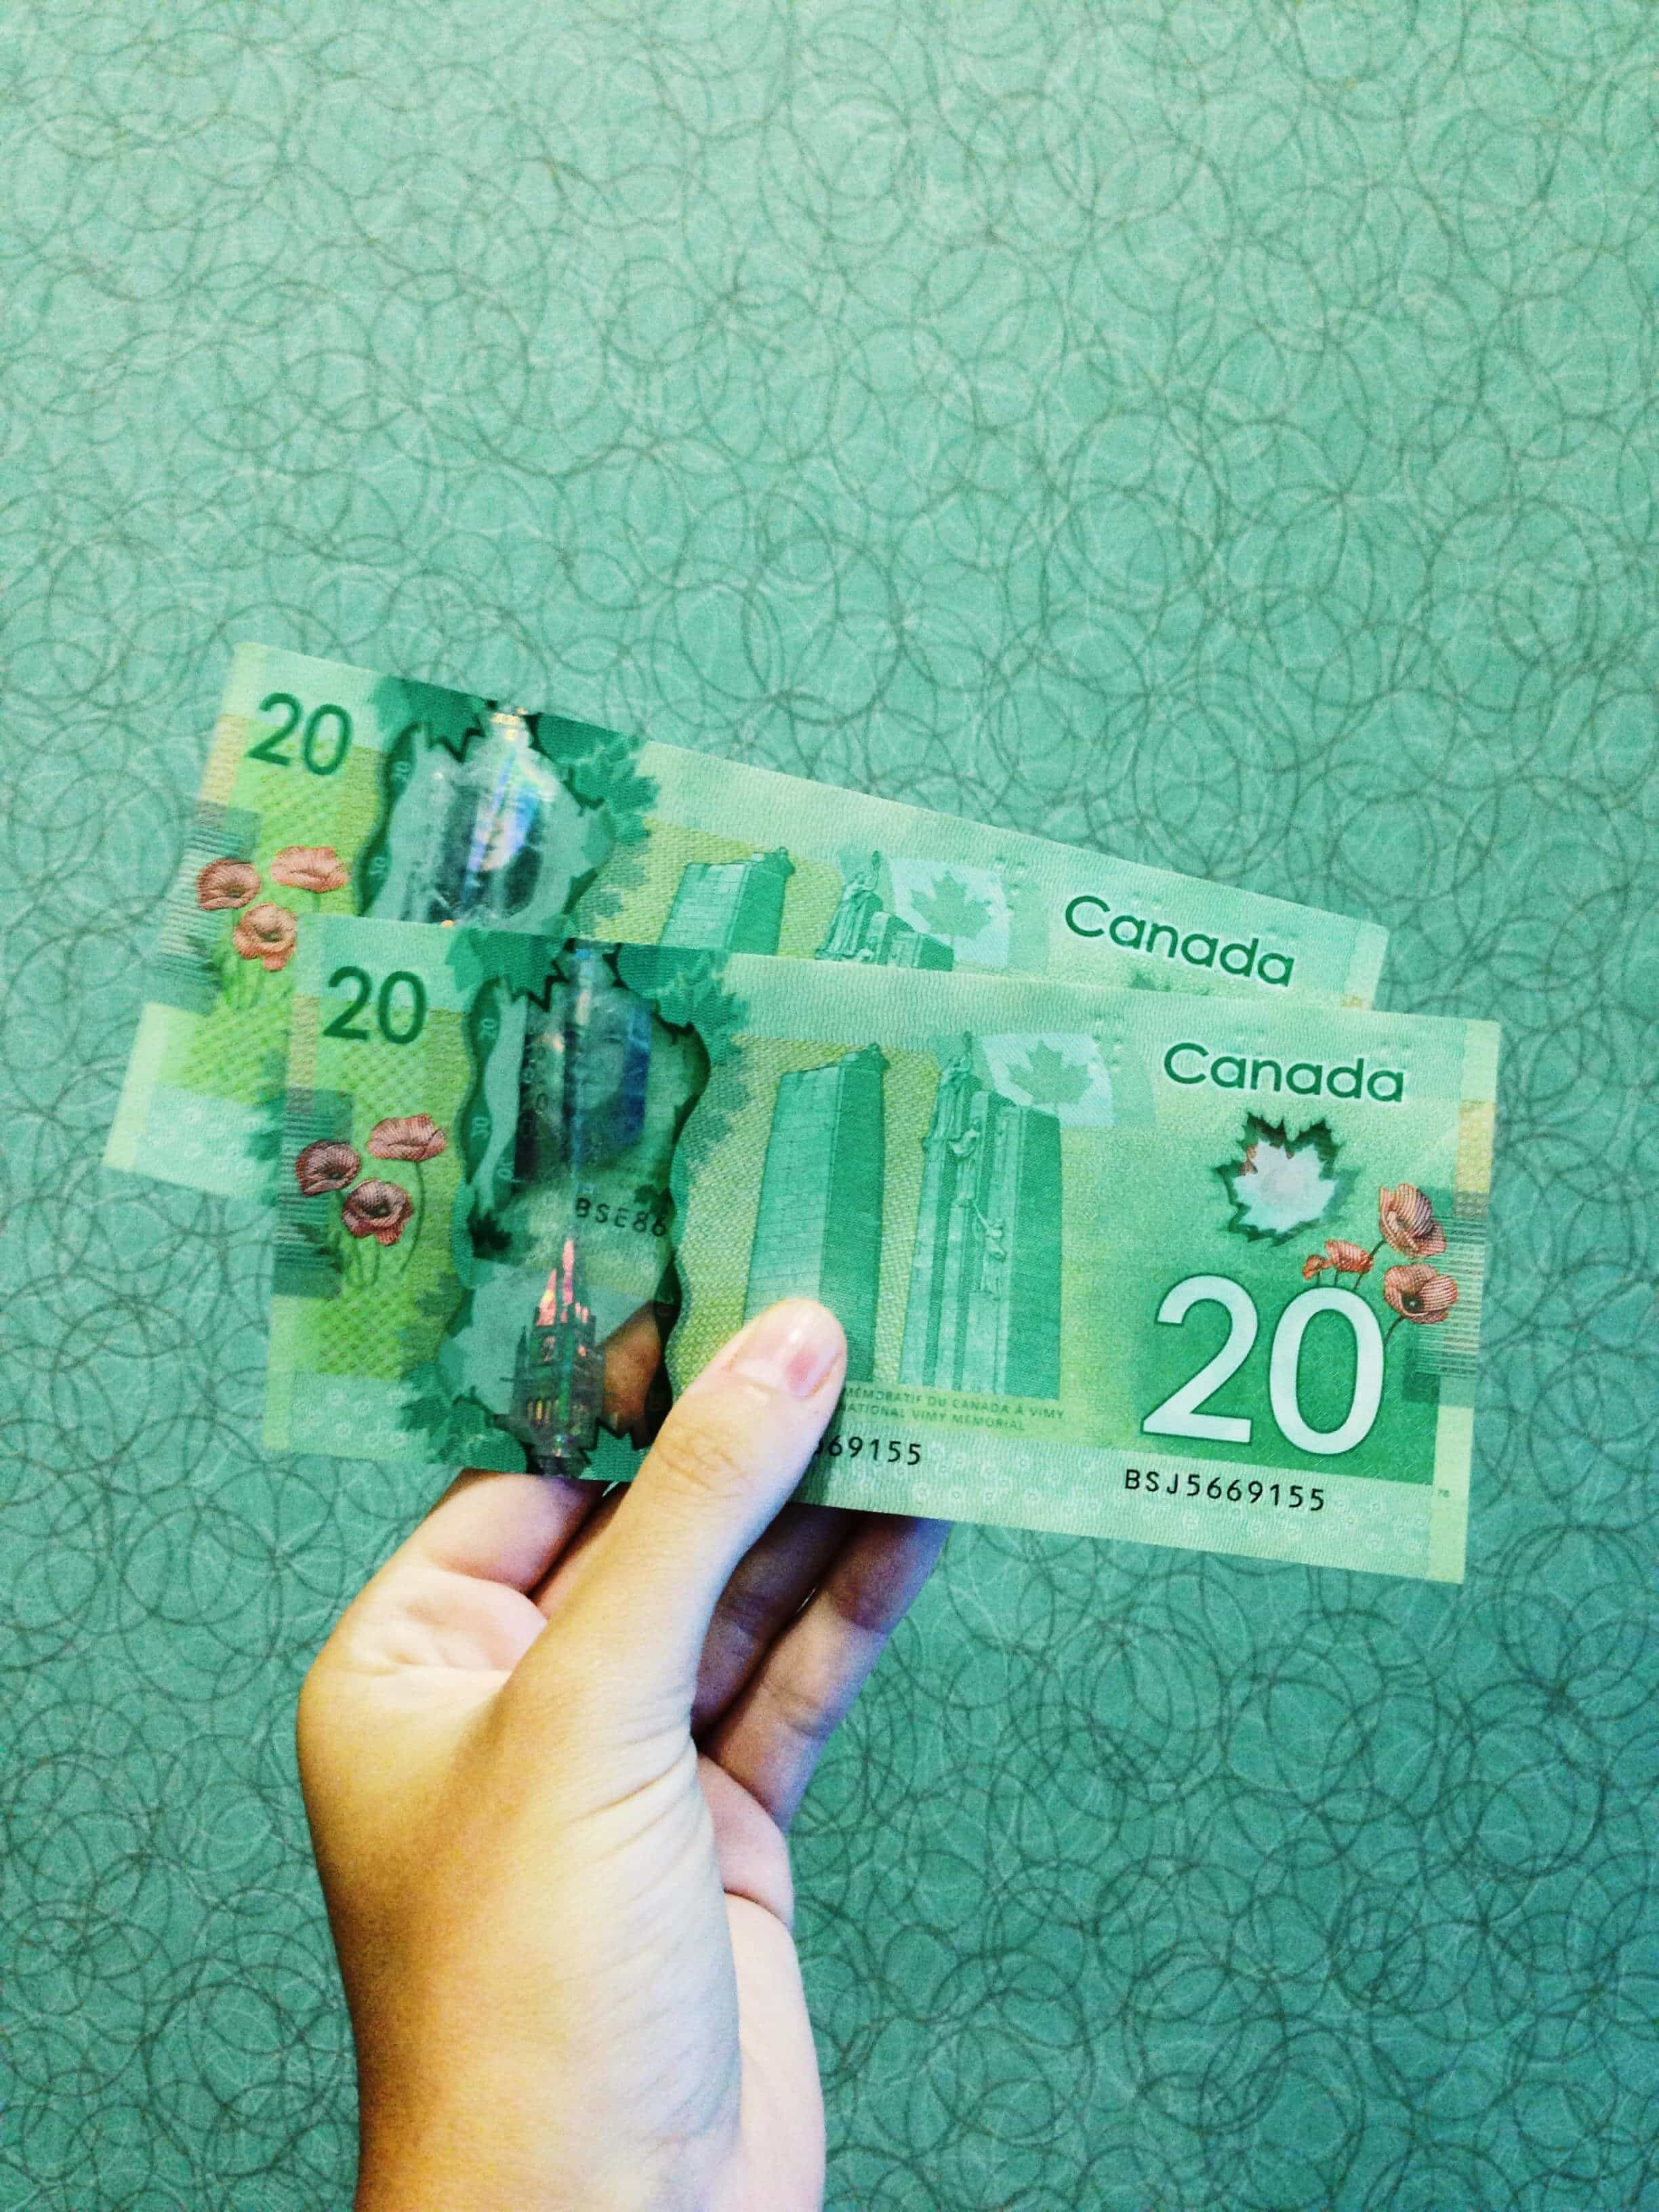 Working Canadian government requires proof of CAD$2500 to support yourself and an onward/return flight. If you don't have any outbound flights booked, enough funds would also be ok. We quickly found out that money in Canada, especially in Vancouver, won't get you far.